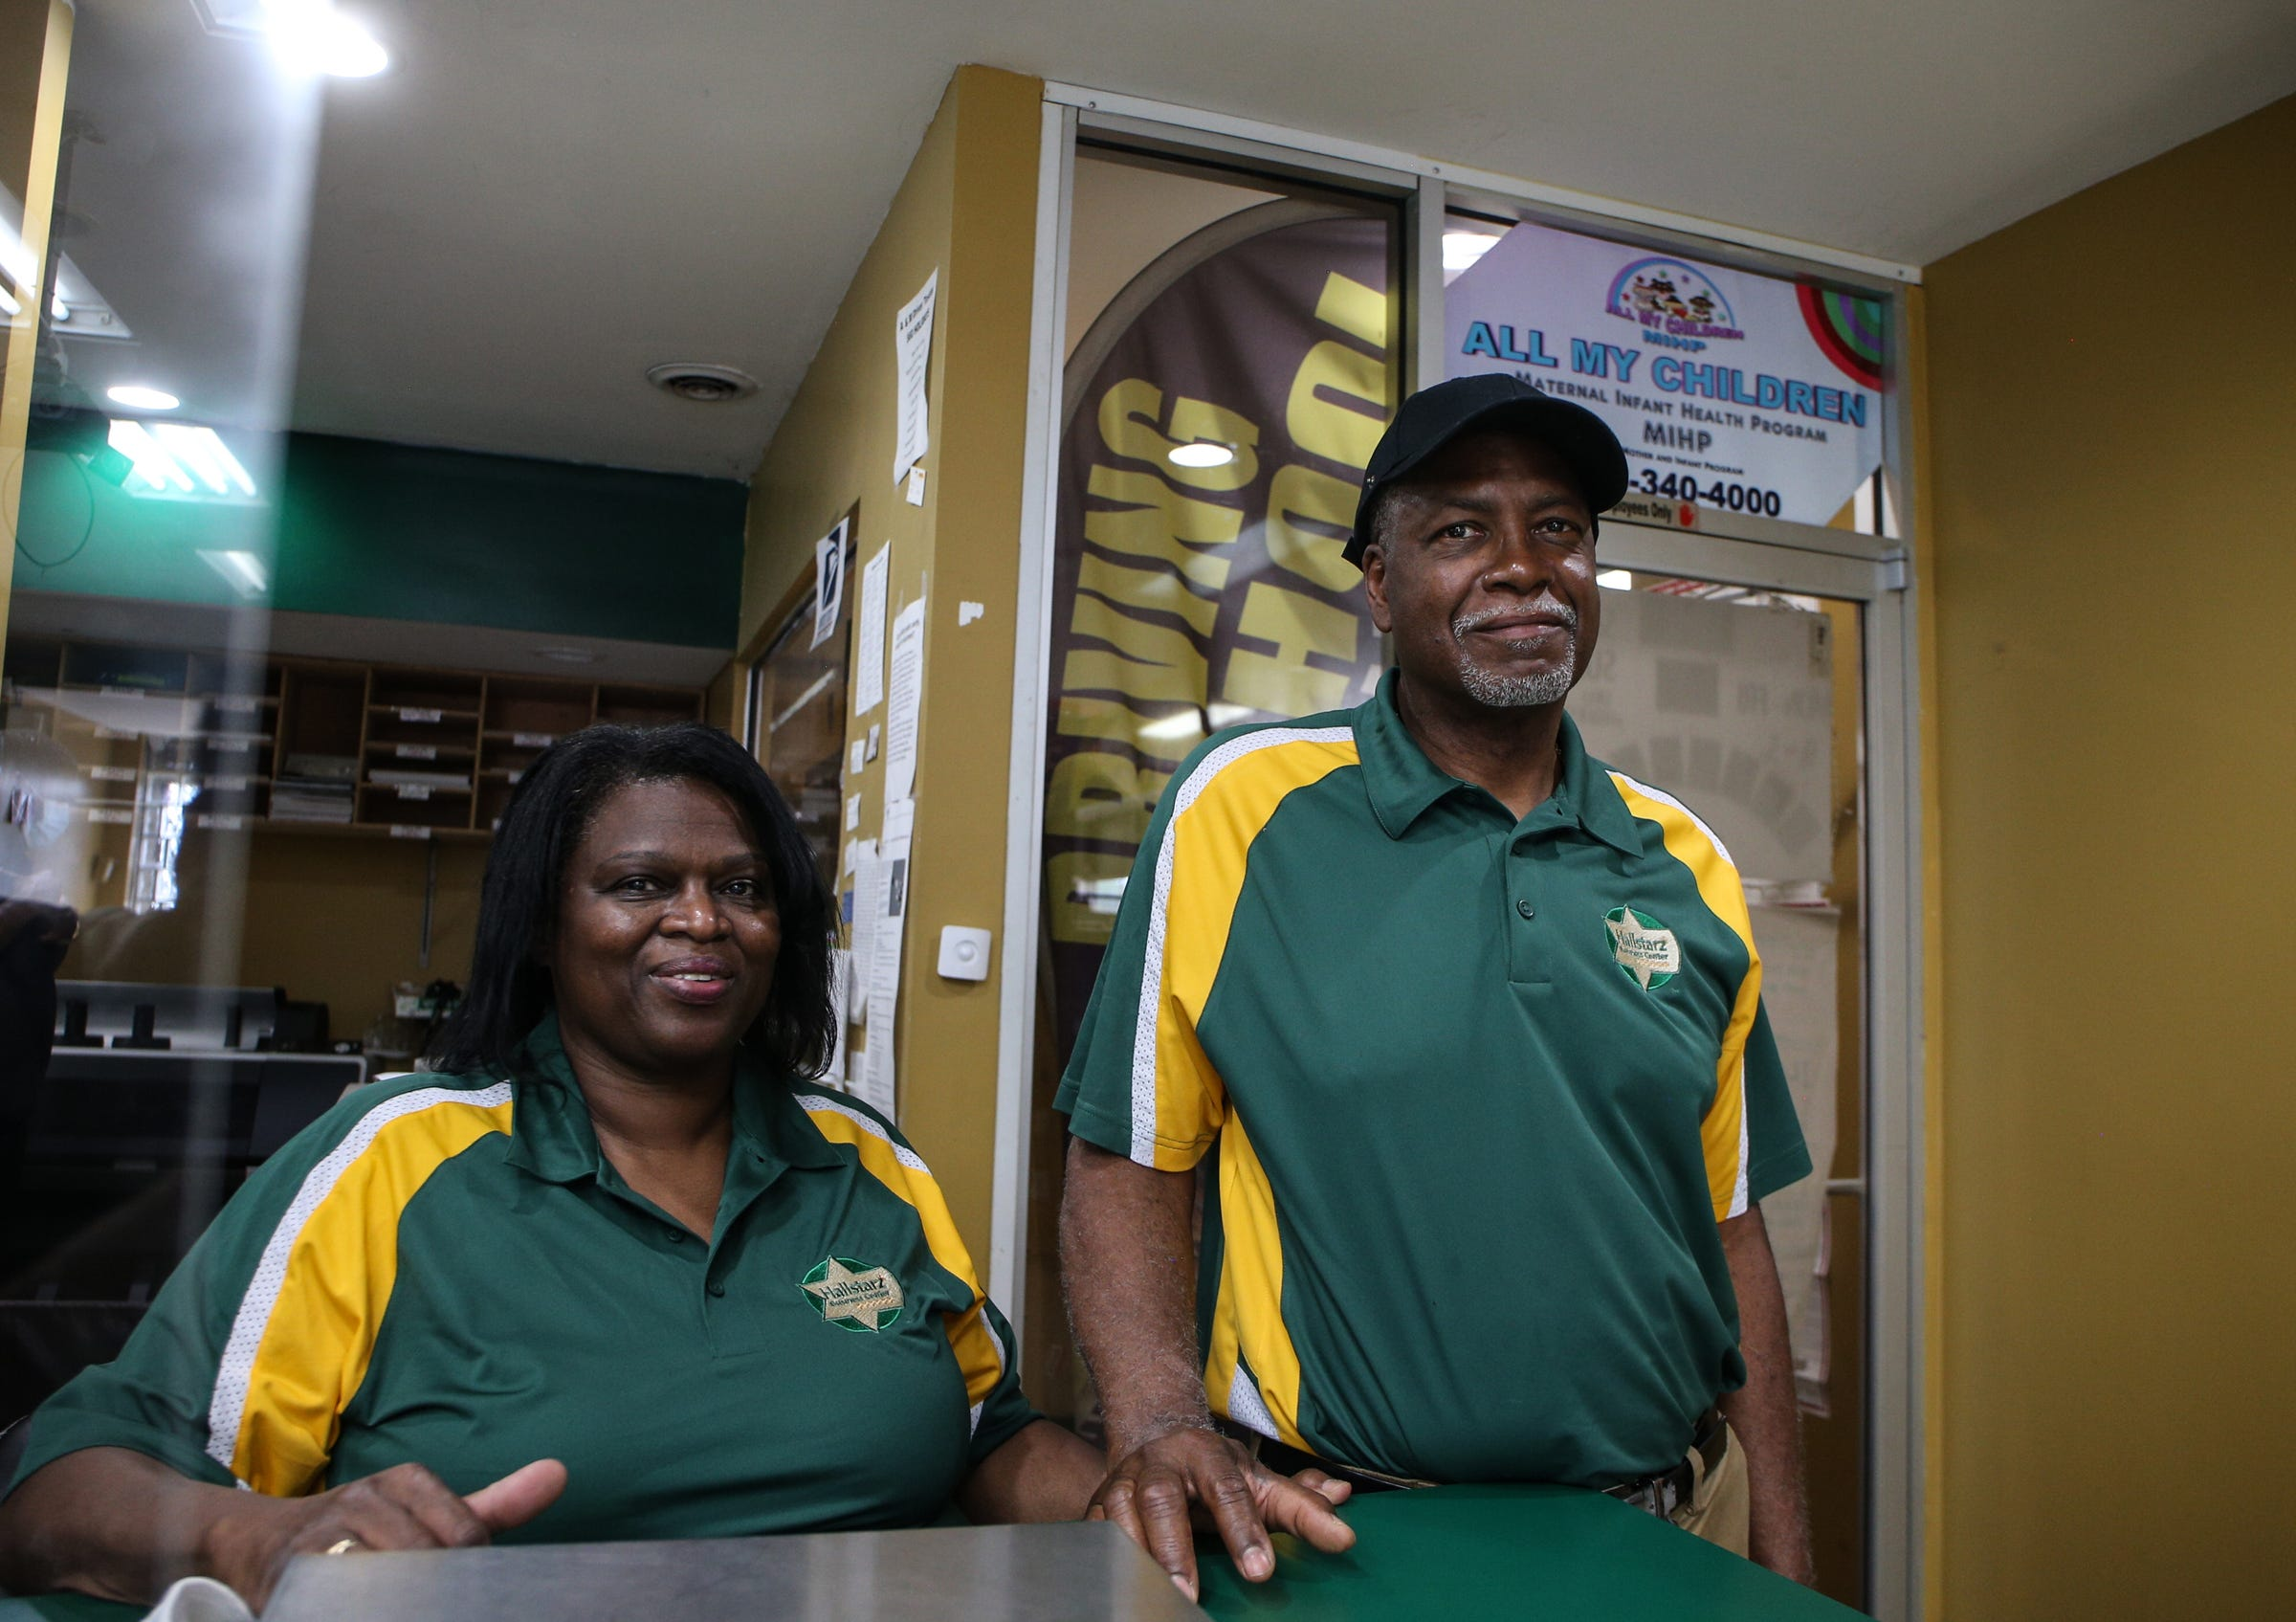 Vanessa Hall and Milton Hall Jr. pose for a photo inside of Hallstarz Business Center in Detroit on July 15, 2021. The business center is a one-stop-shop in the Bagley neighborhood. A neighborhood source for packing, shipping, printing and other business services. Created 36 years ago by a Detroit couple, Milton Hall Jr. and Vanessa Hall. The business is now run by their oldest son, Mario Hall with help from his five brothers.